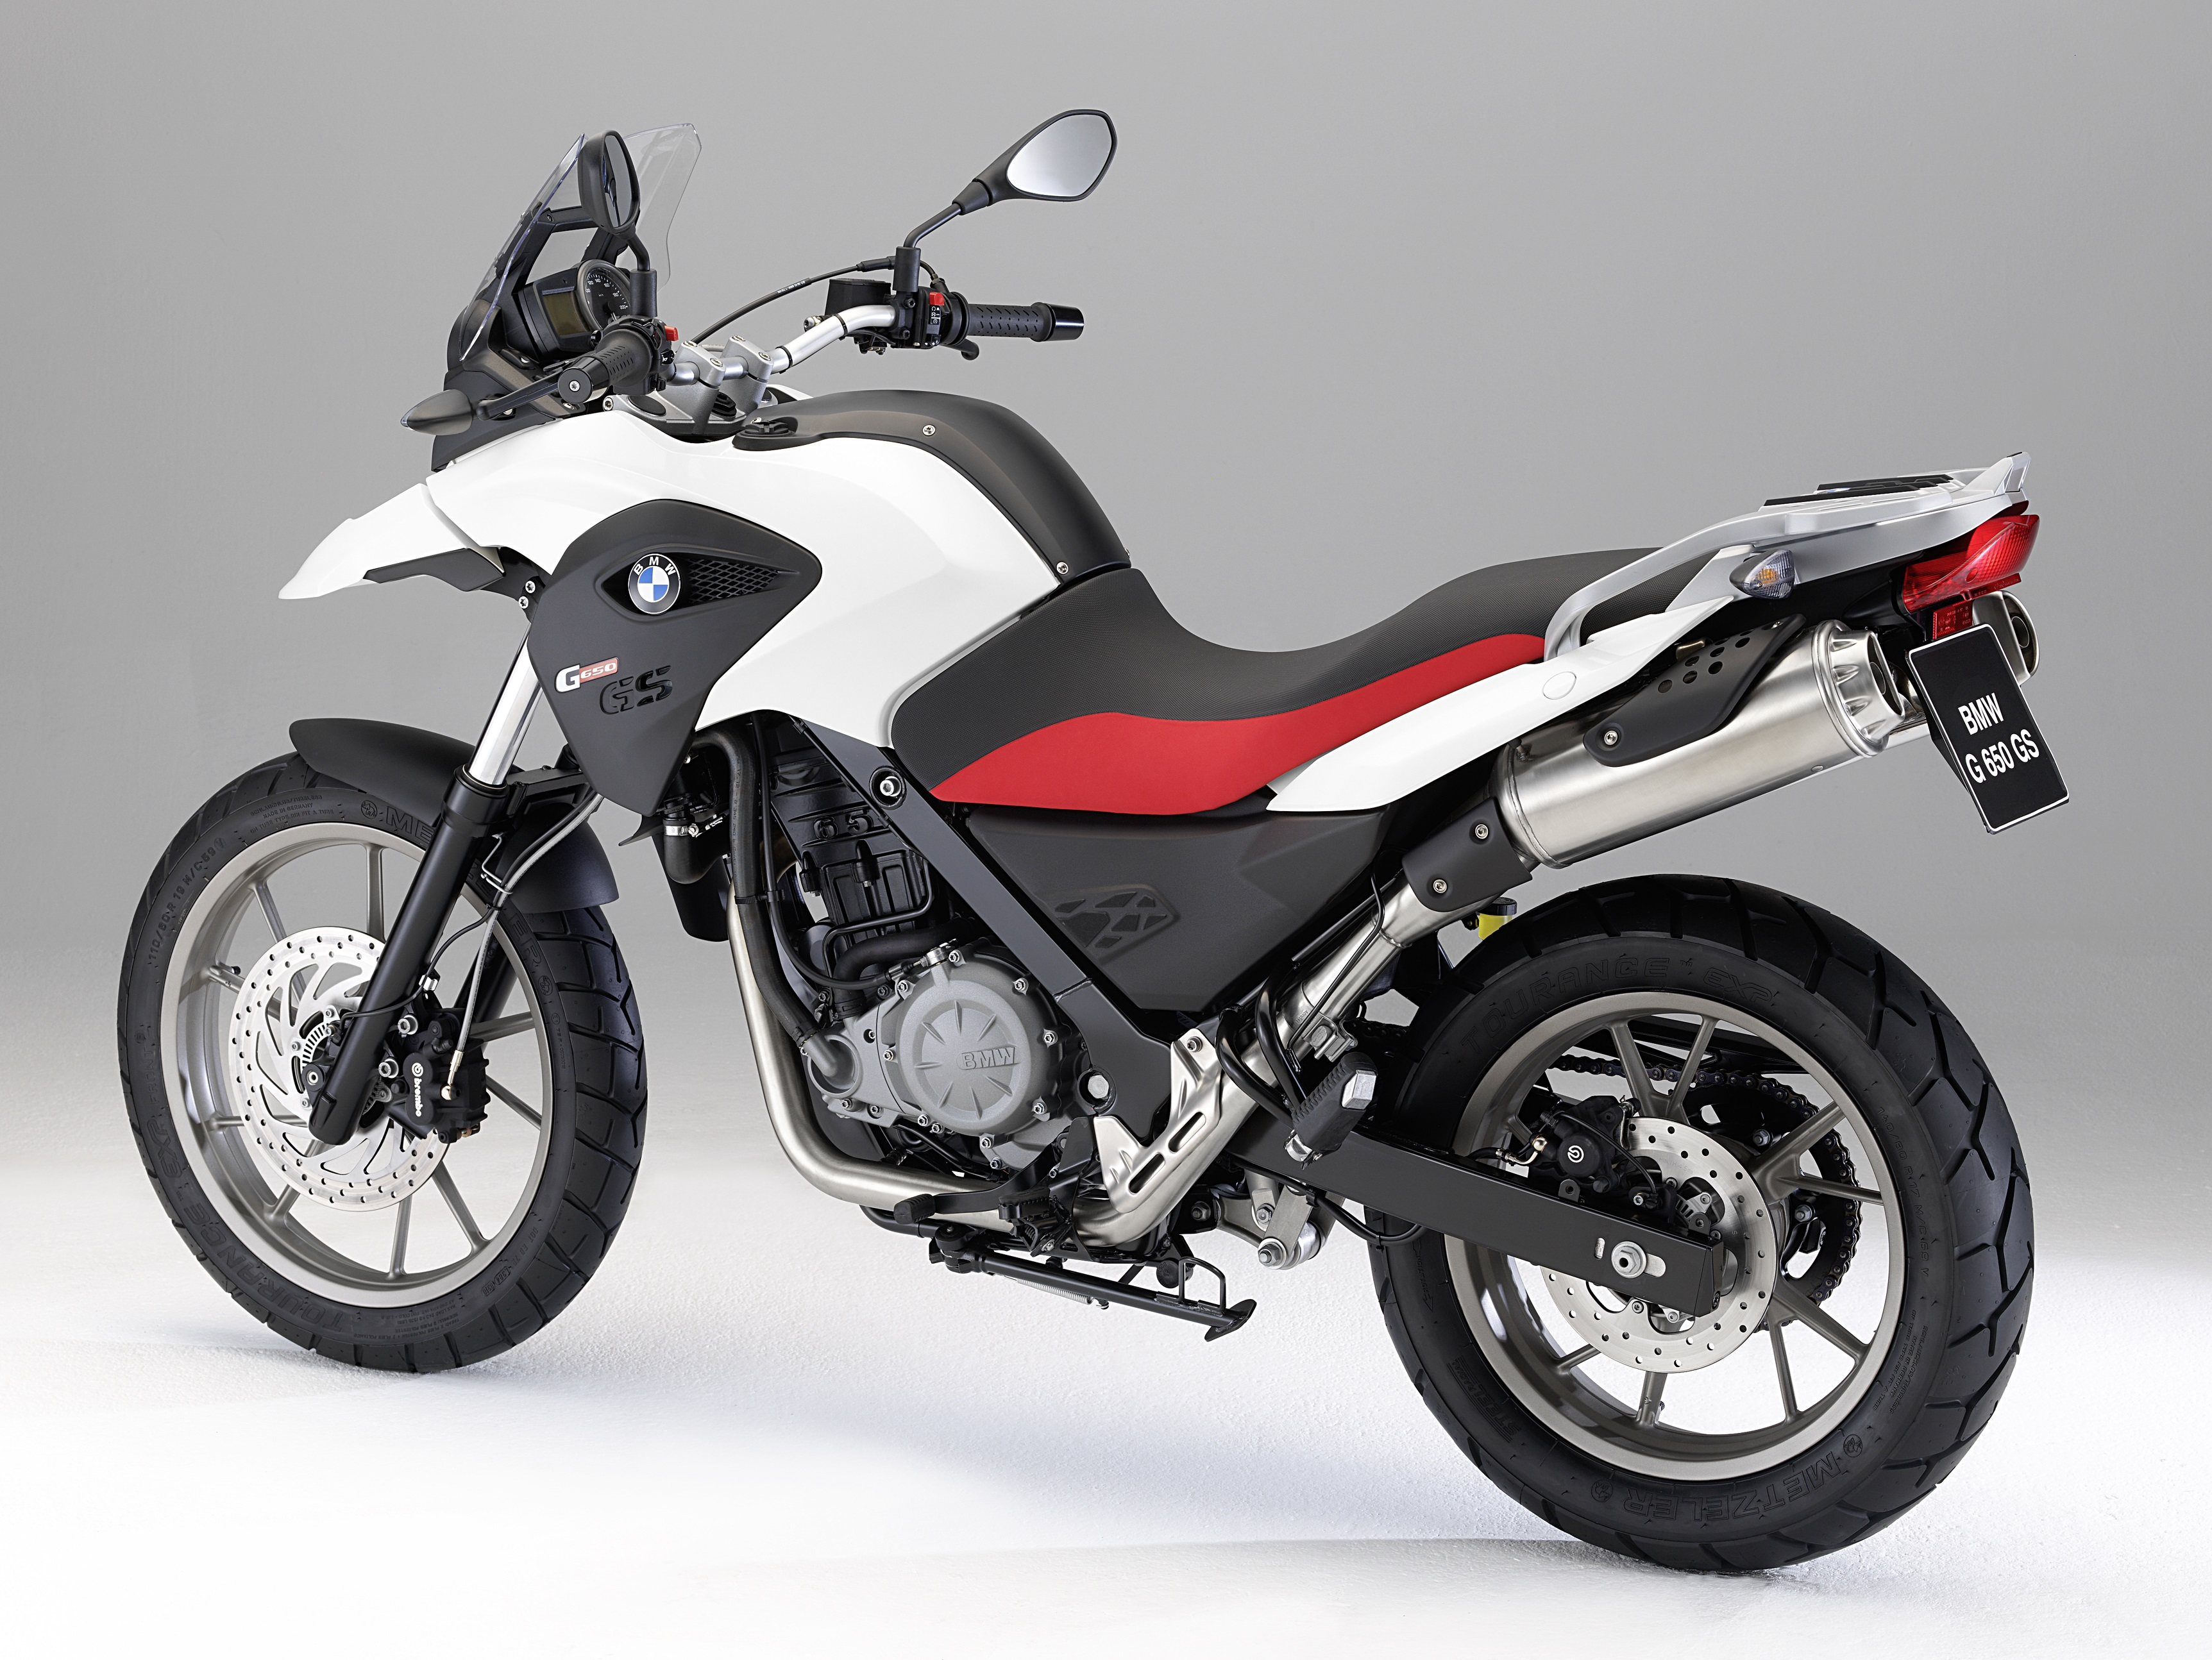 For Sale: BMW G650GS • The Bike Market